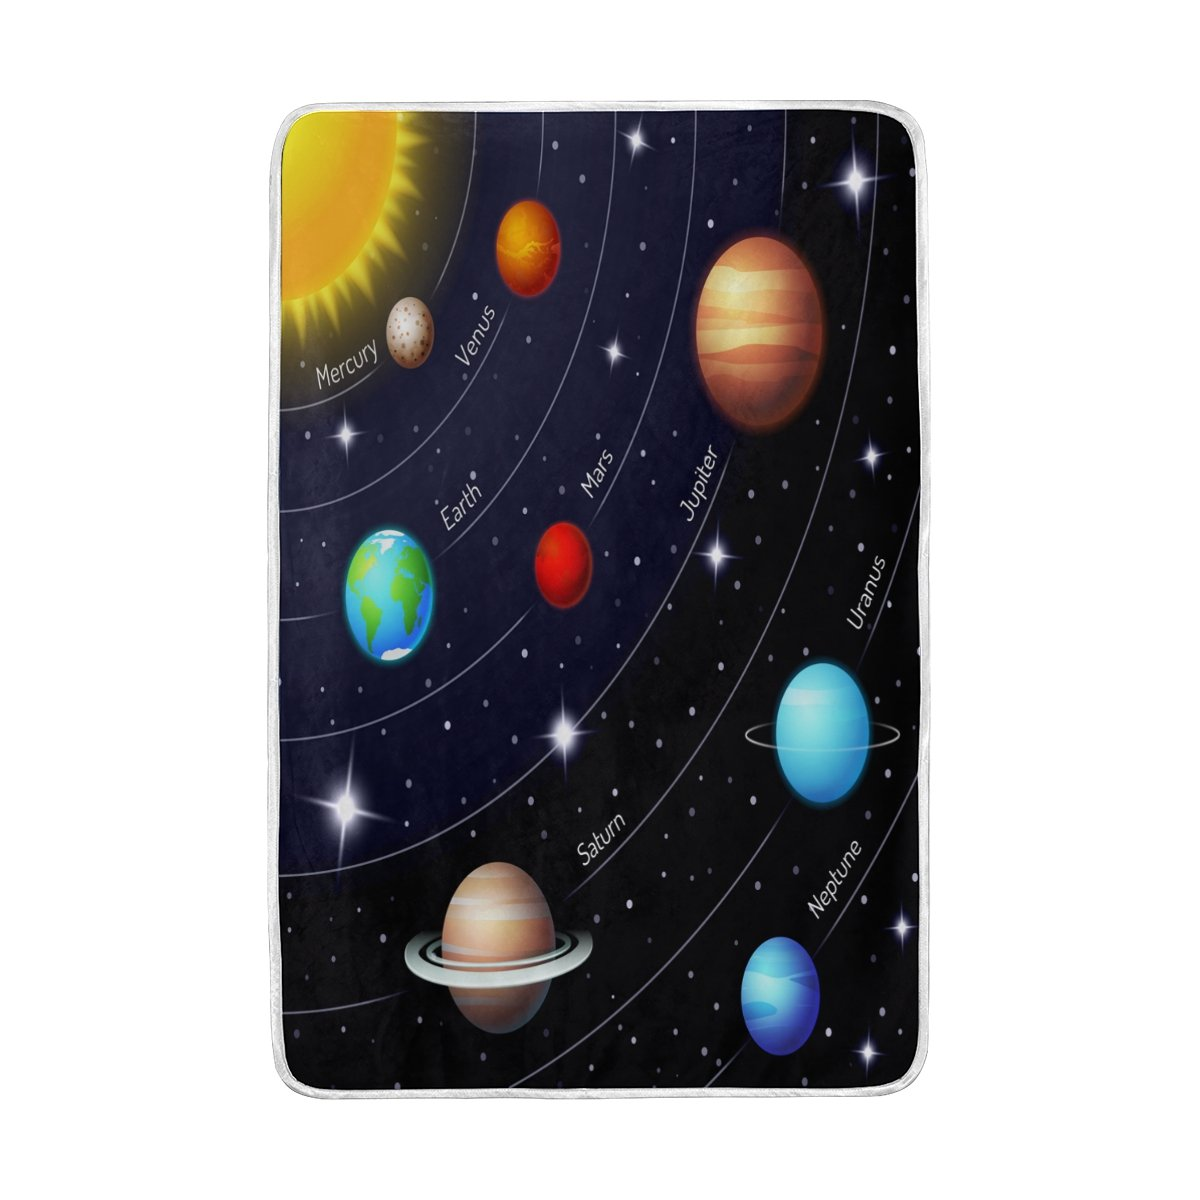 ALAZA Universe Galaxy Solar System Blanket Lightweight Soft Warm Blanket Twin Size 60x90 inches for Bed Sofa Couch Office Home Decor